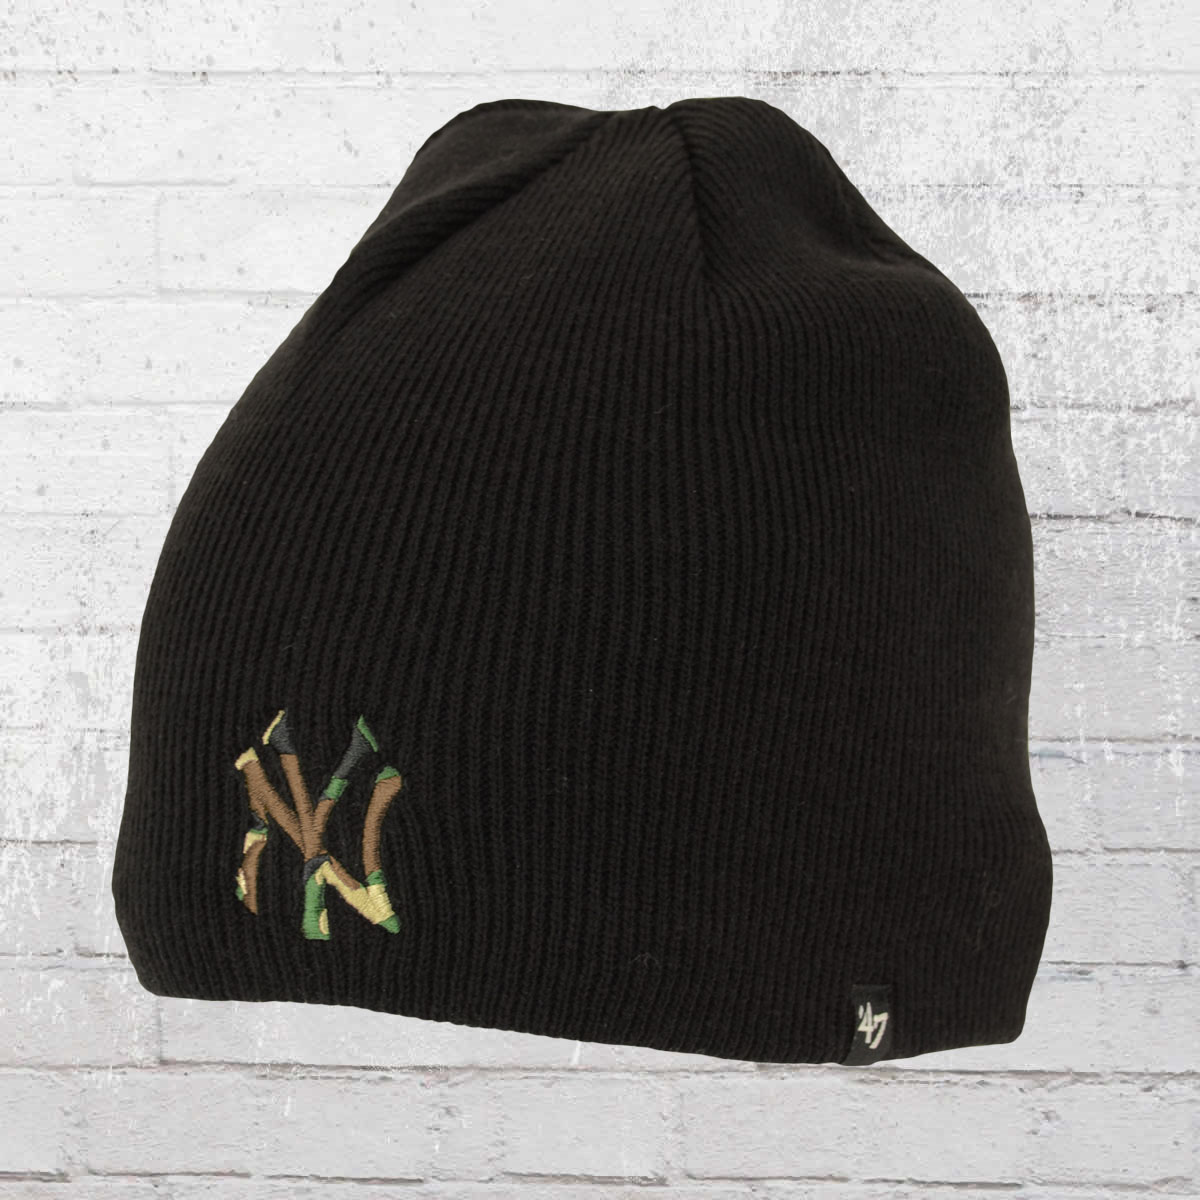 1d7232f6add 47 Brands Knitted Hat New York Yankees Camfill Beanie black. ›‹ «